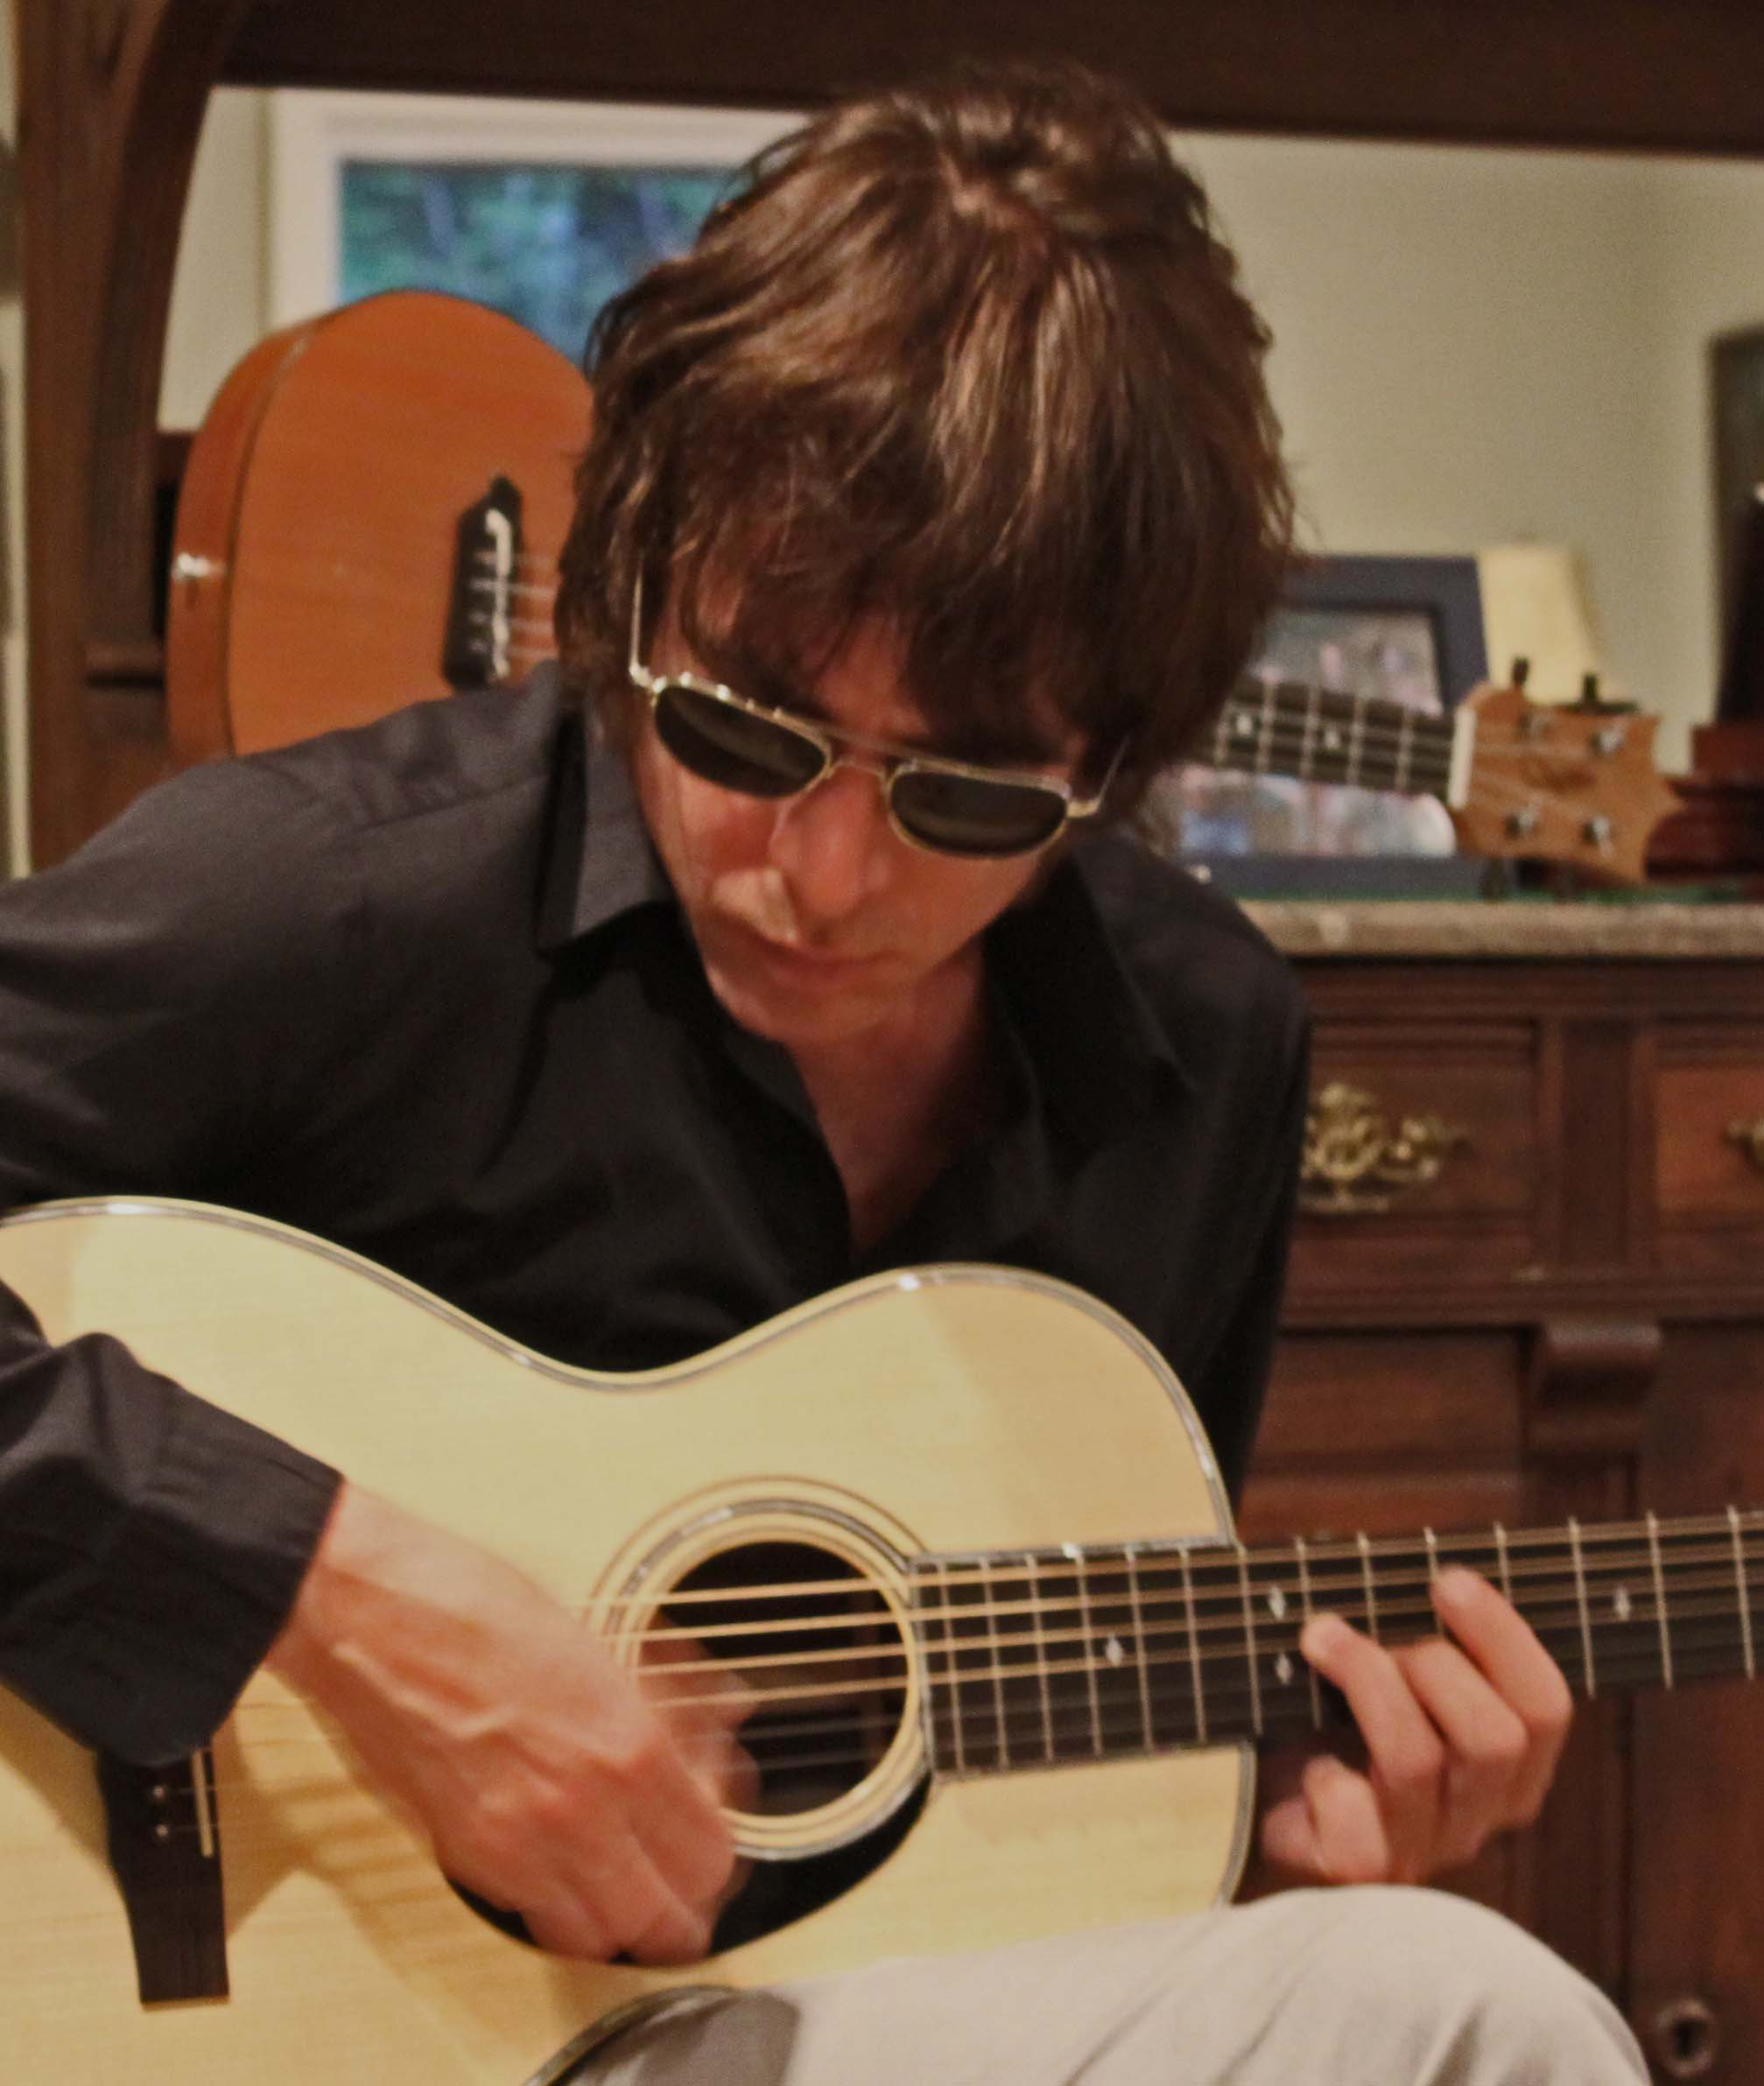 Jody Porter playing a Lichty Guitar - a Handmade Brazilian Rosewood Parlor Guitar by luthier, Jay Lichty